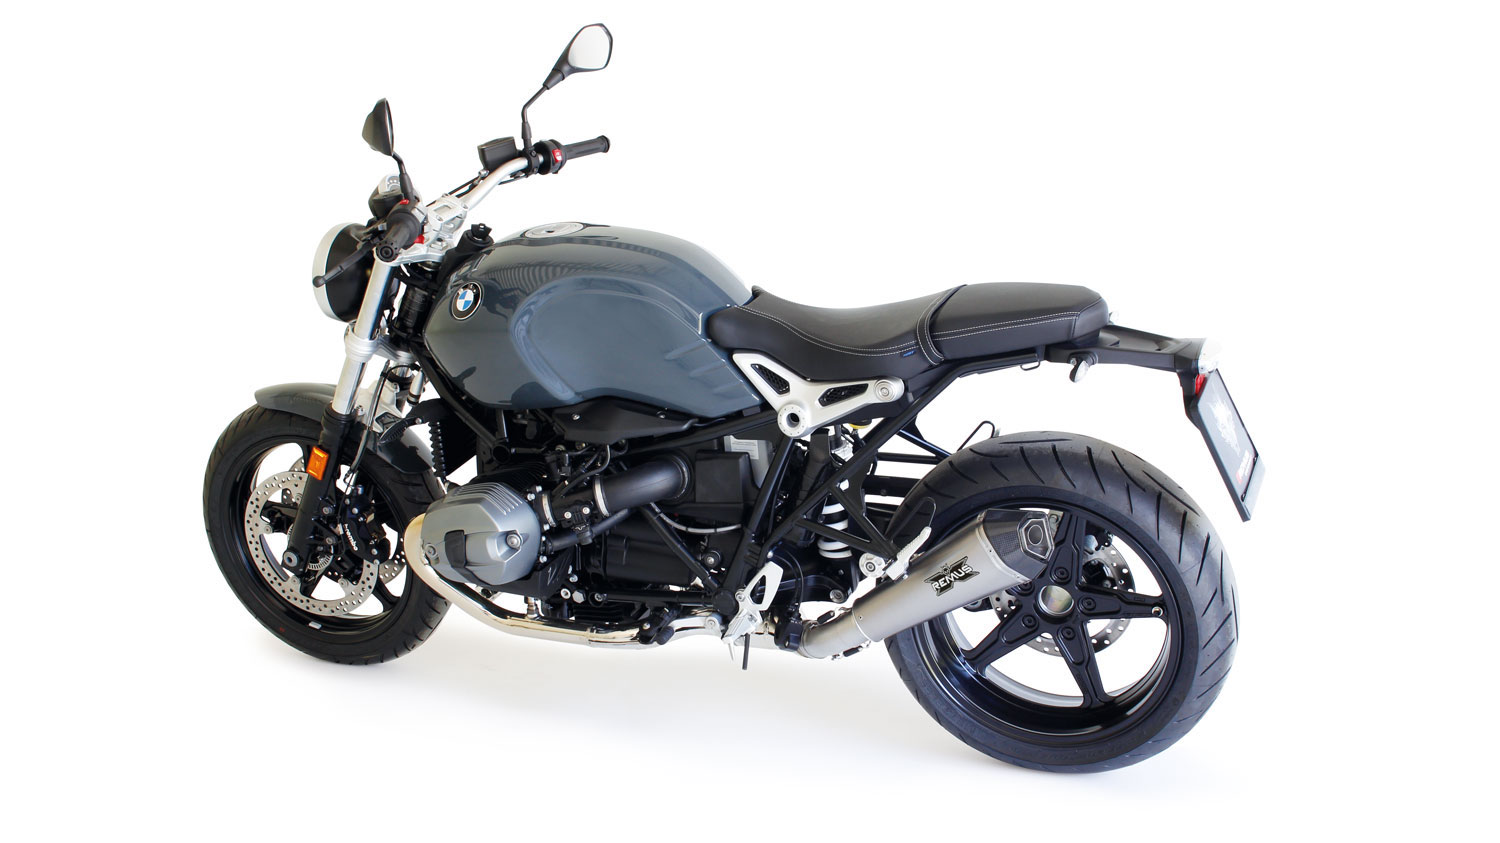 remus news bike info 12 race 17 bmw r nine t mod 17 racing exhaust options. Black Bedroom Furniture Sets. Home Design Ideas